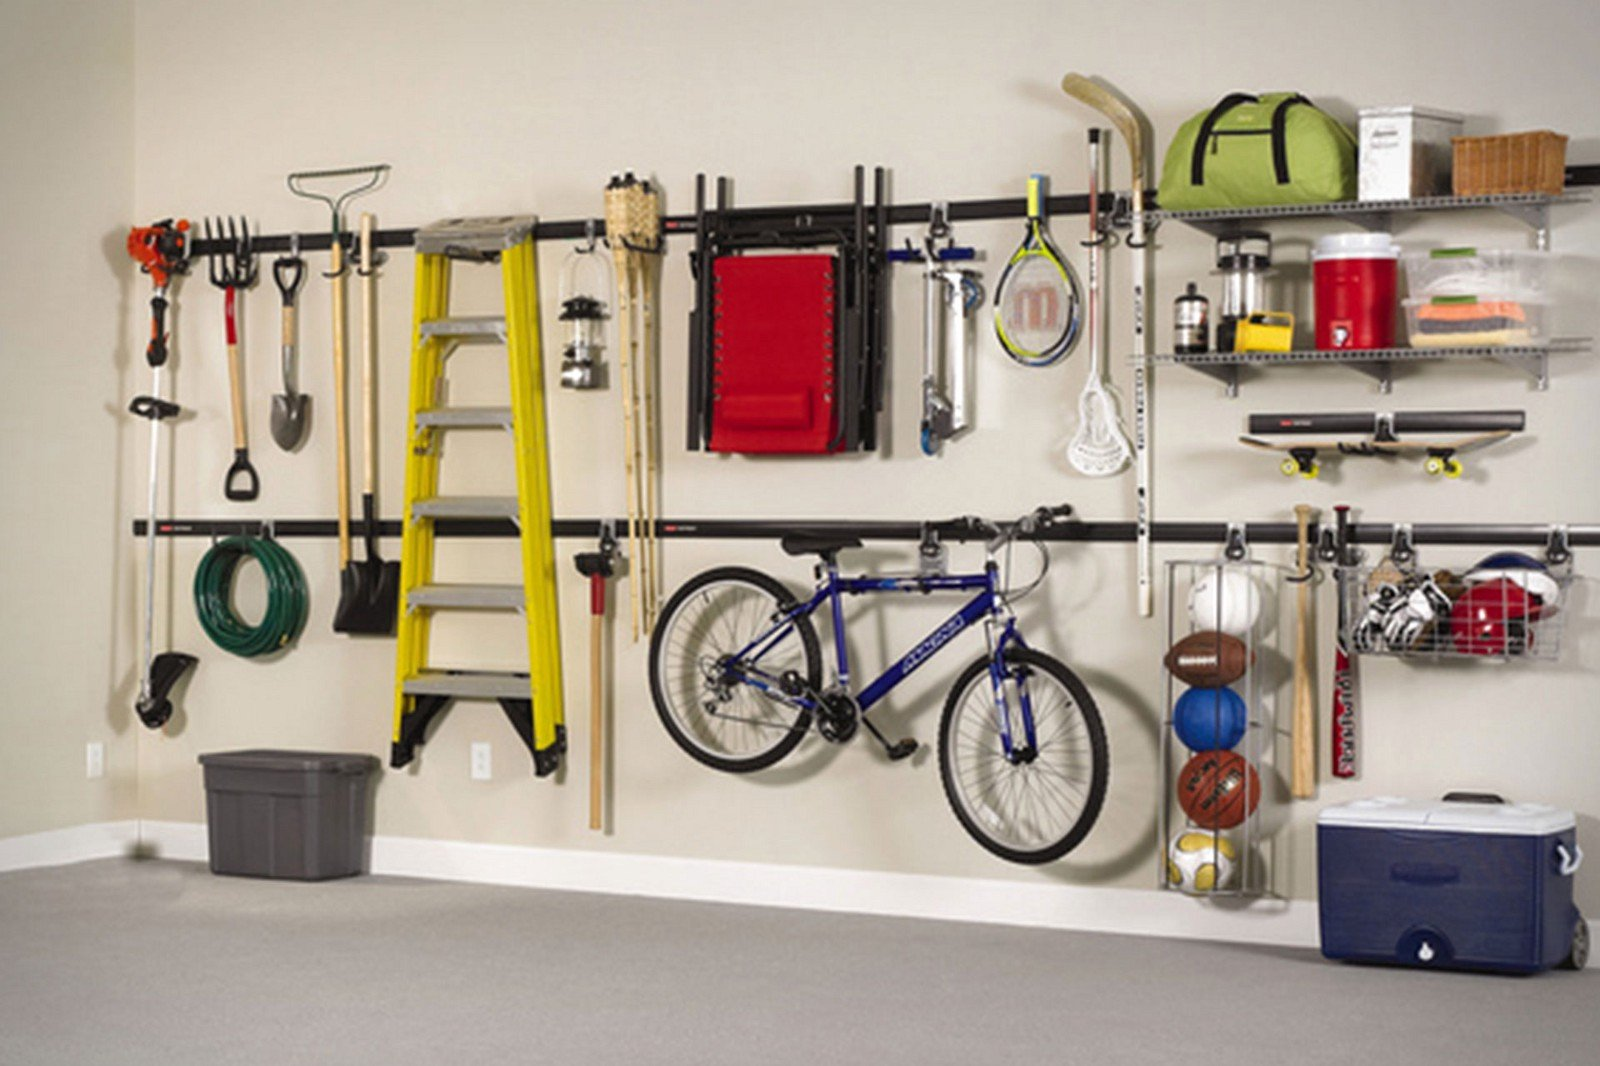 garage organization ideas 7 great garage storage ideas west coast self storage 30548